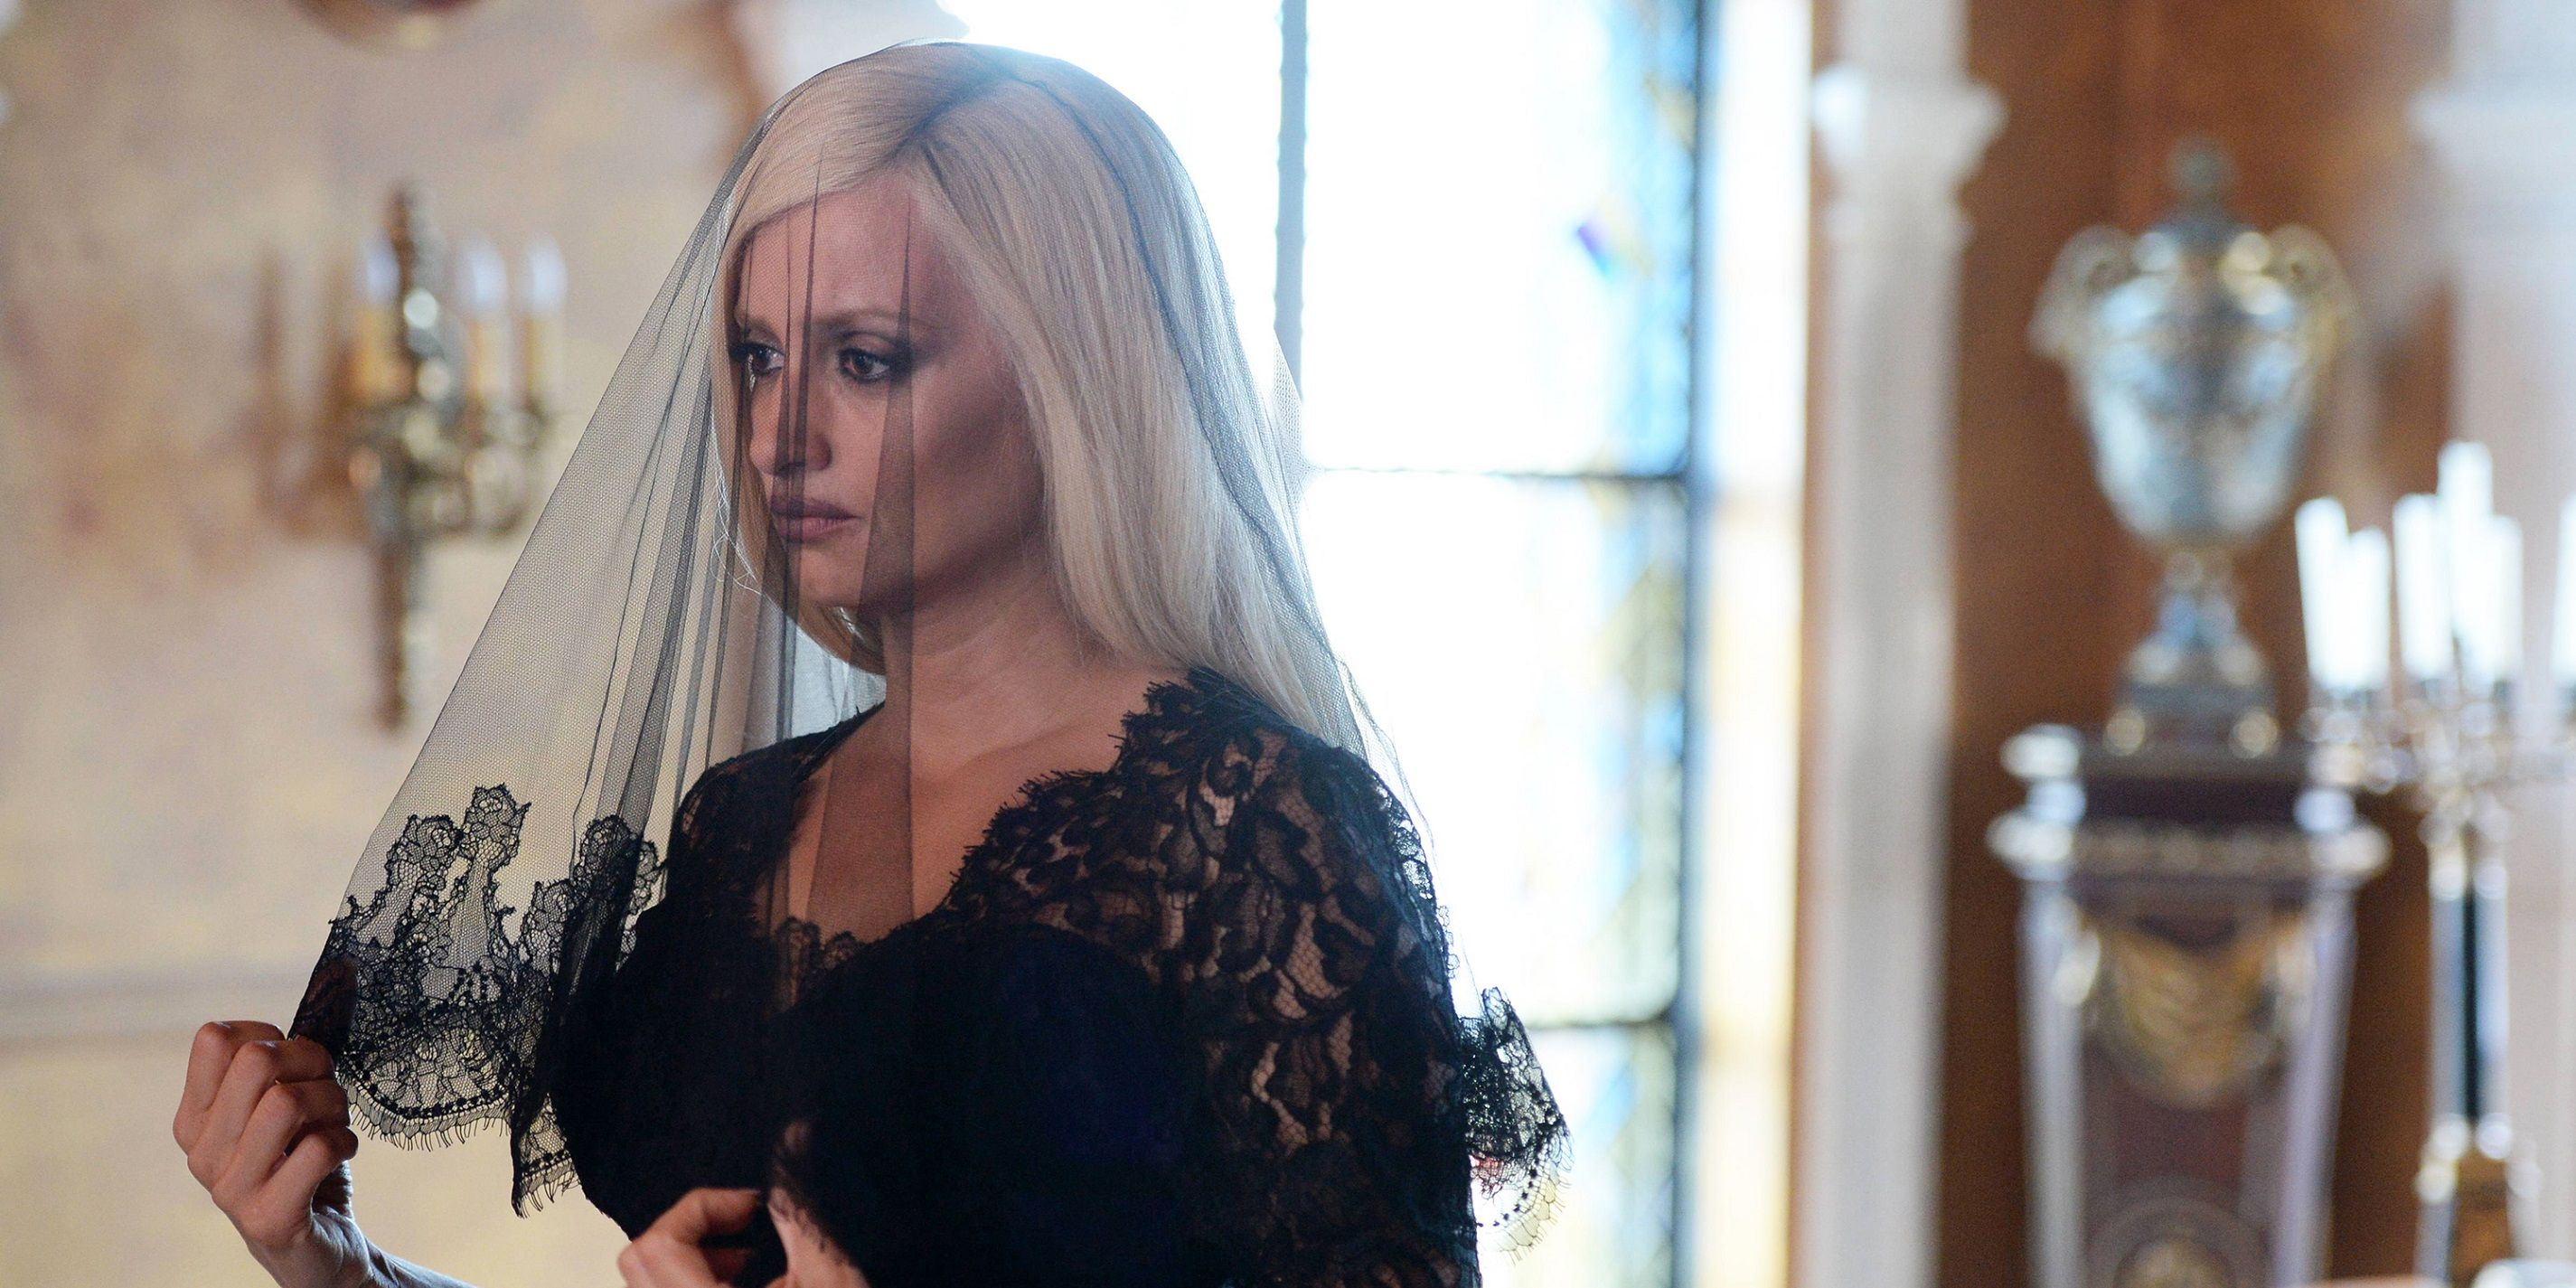 Penelope Cruz in American Crime Story: The Assassination of Gianni Versace